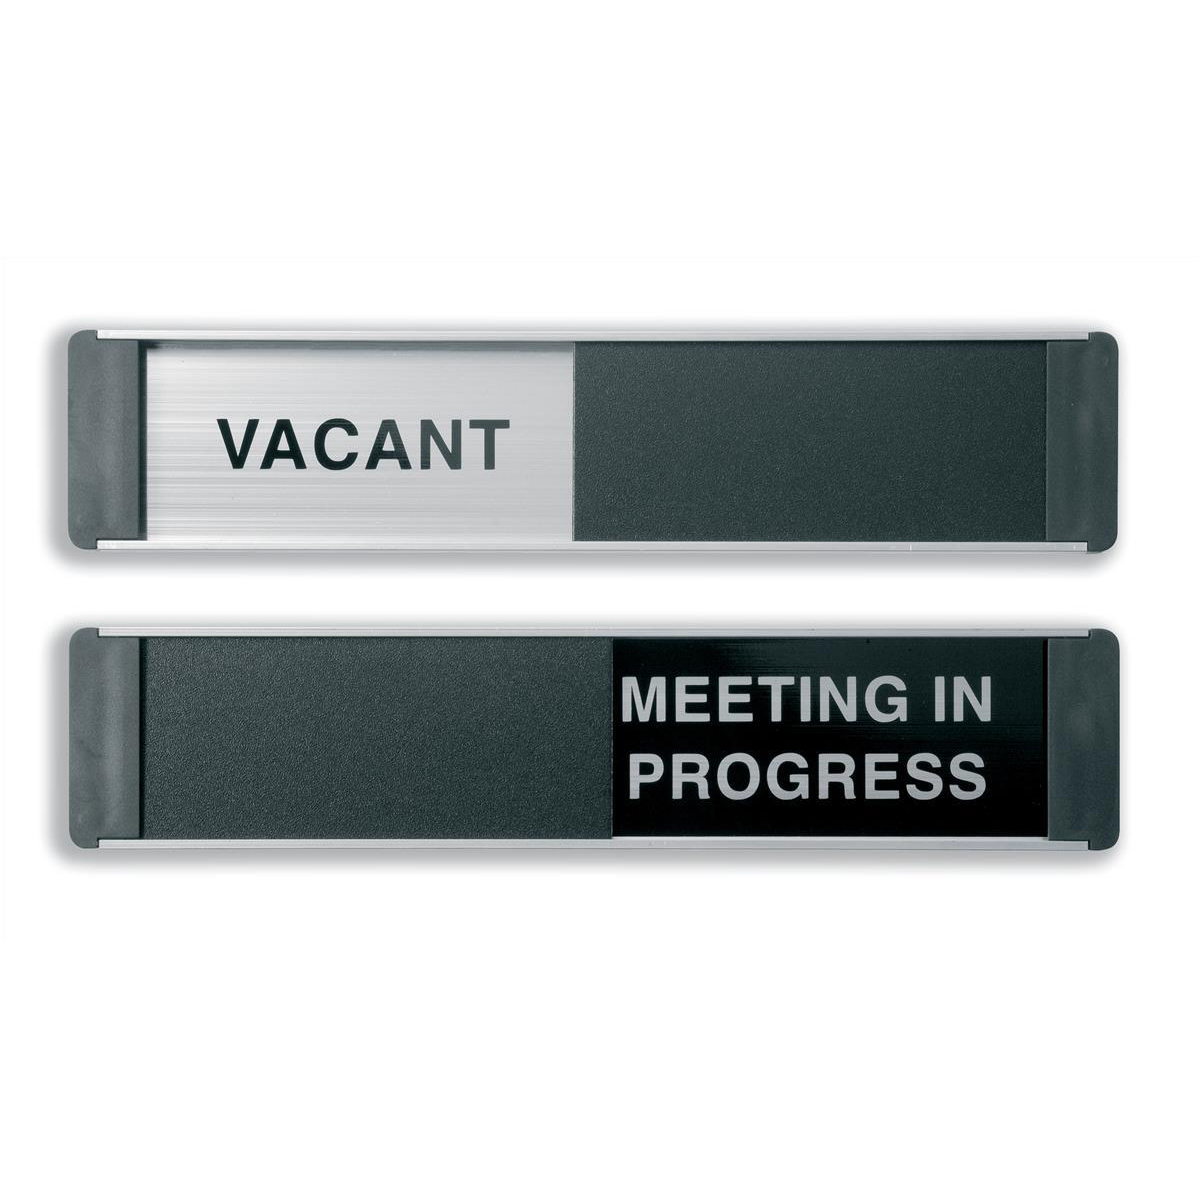 Advice Stewart Superior Vacant/Meeting In Progress Door Panel Aluminium/PVC W255xH52mm Self-adhesive Ref OF139